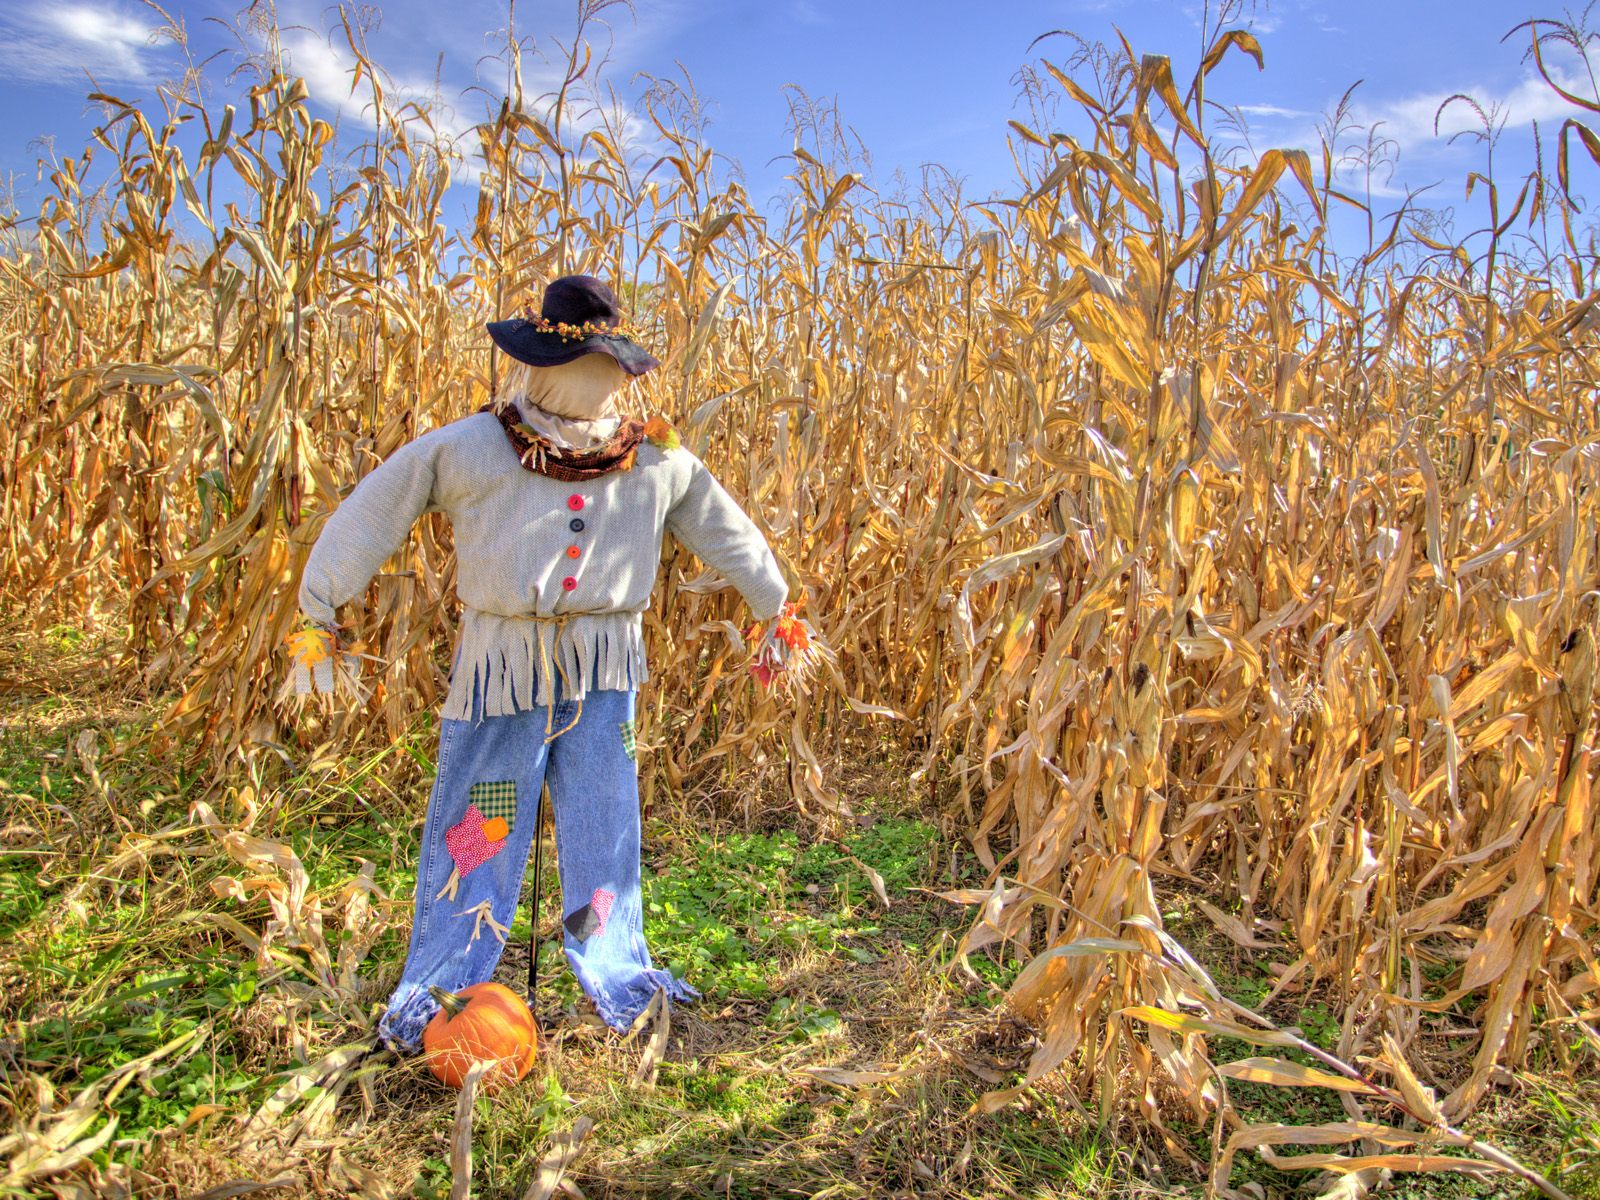 This is the average scarecrow in a cornfield.